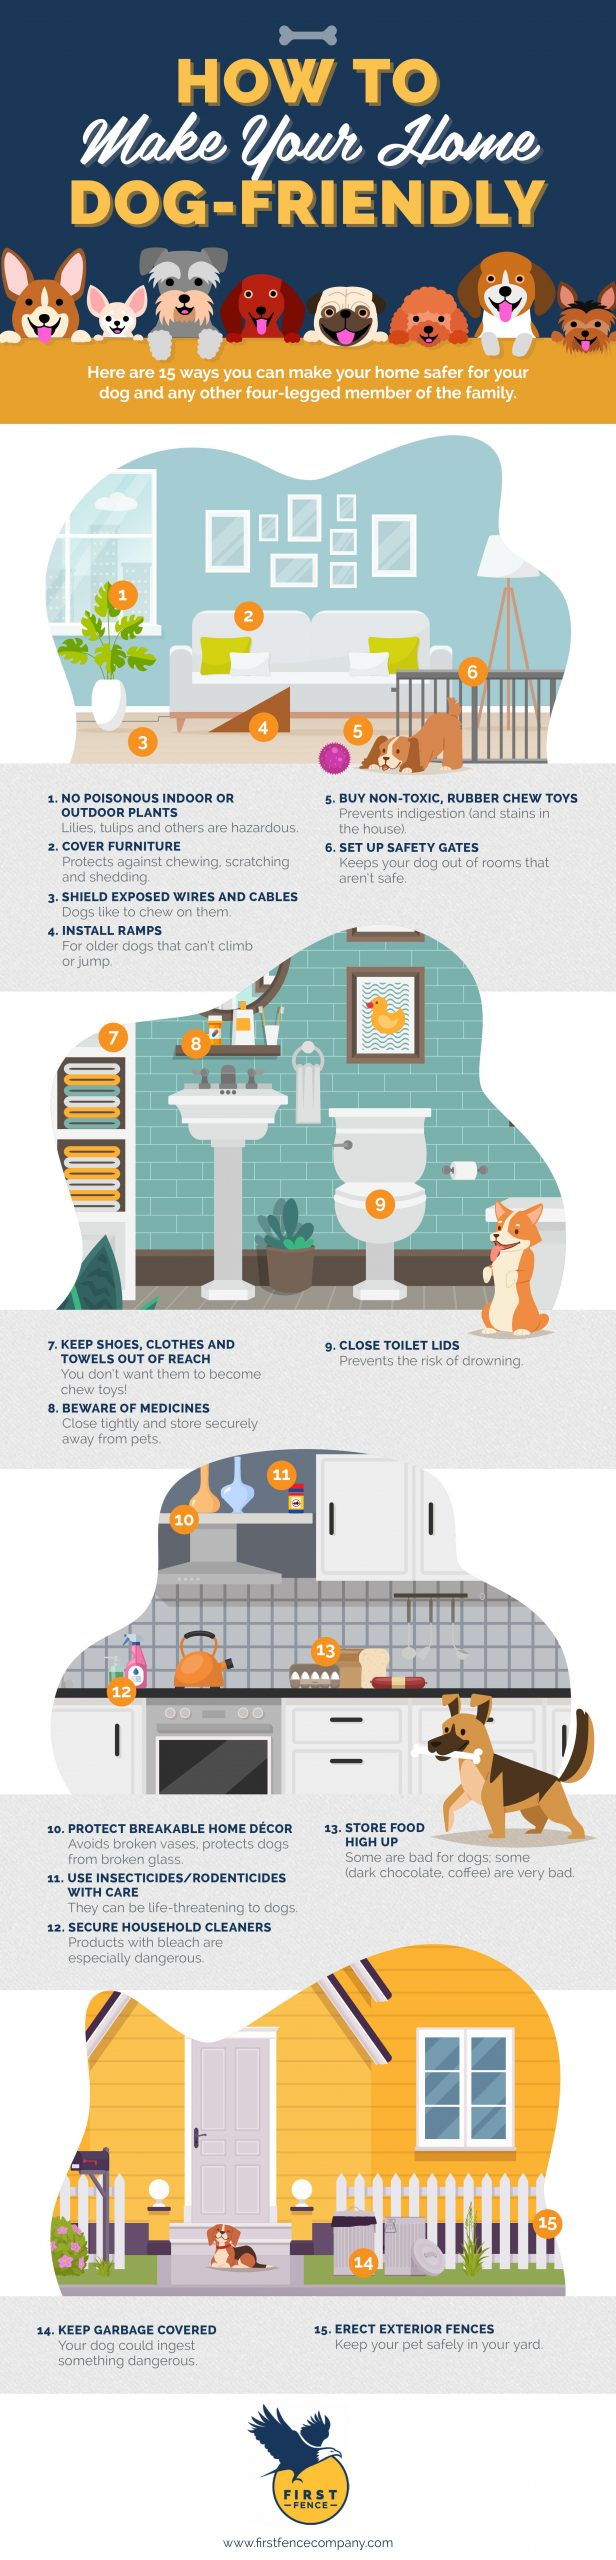 airbnb pet friendly amenities graphic